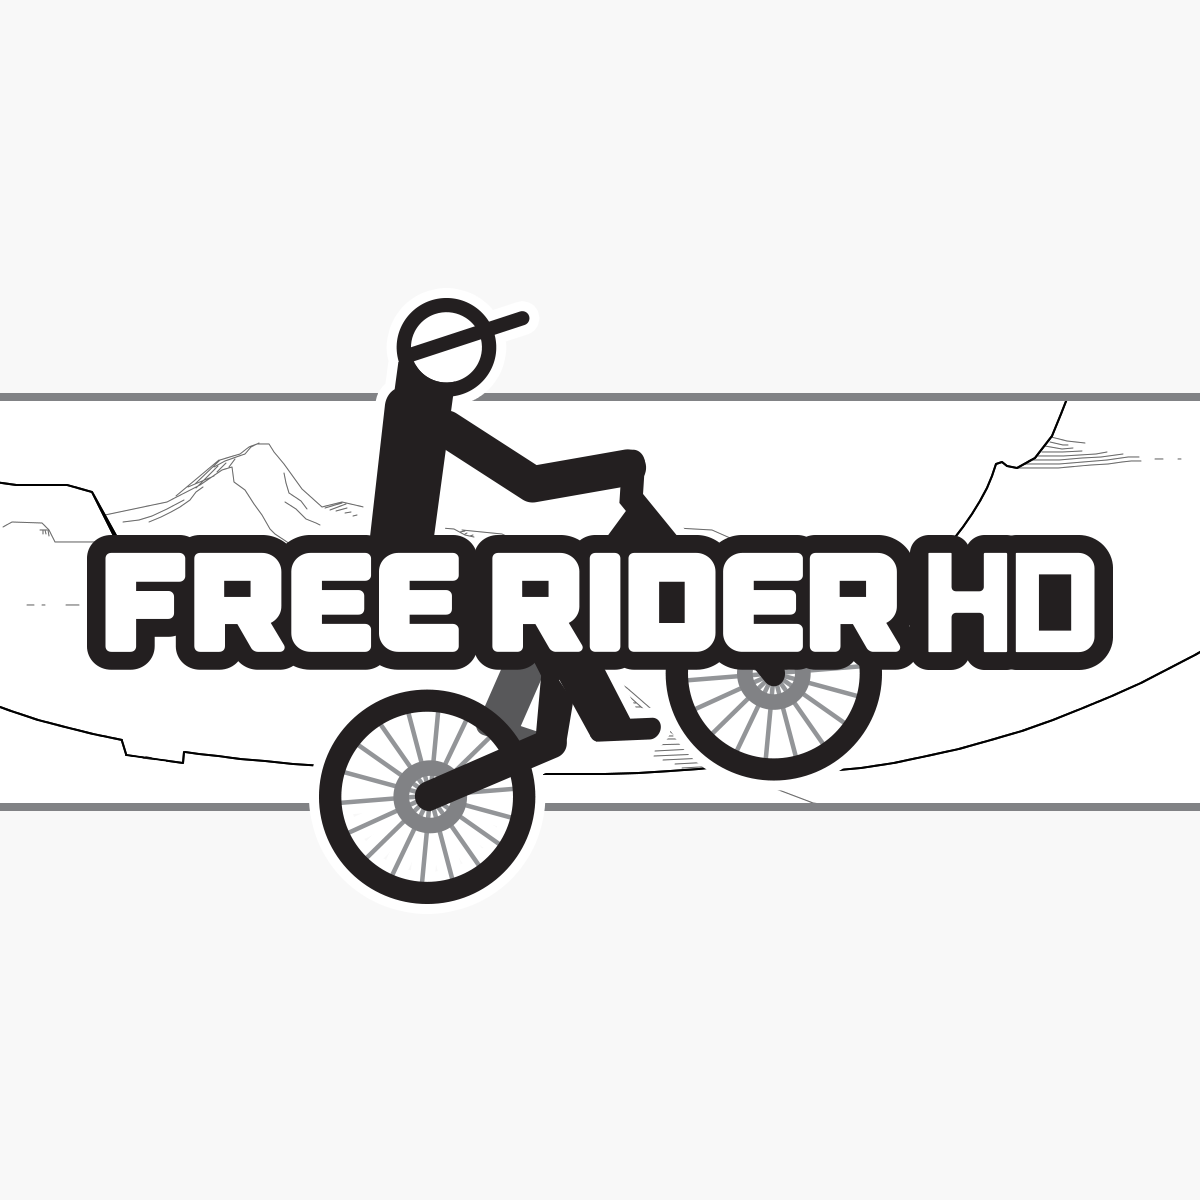 what is free rider